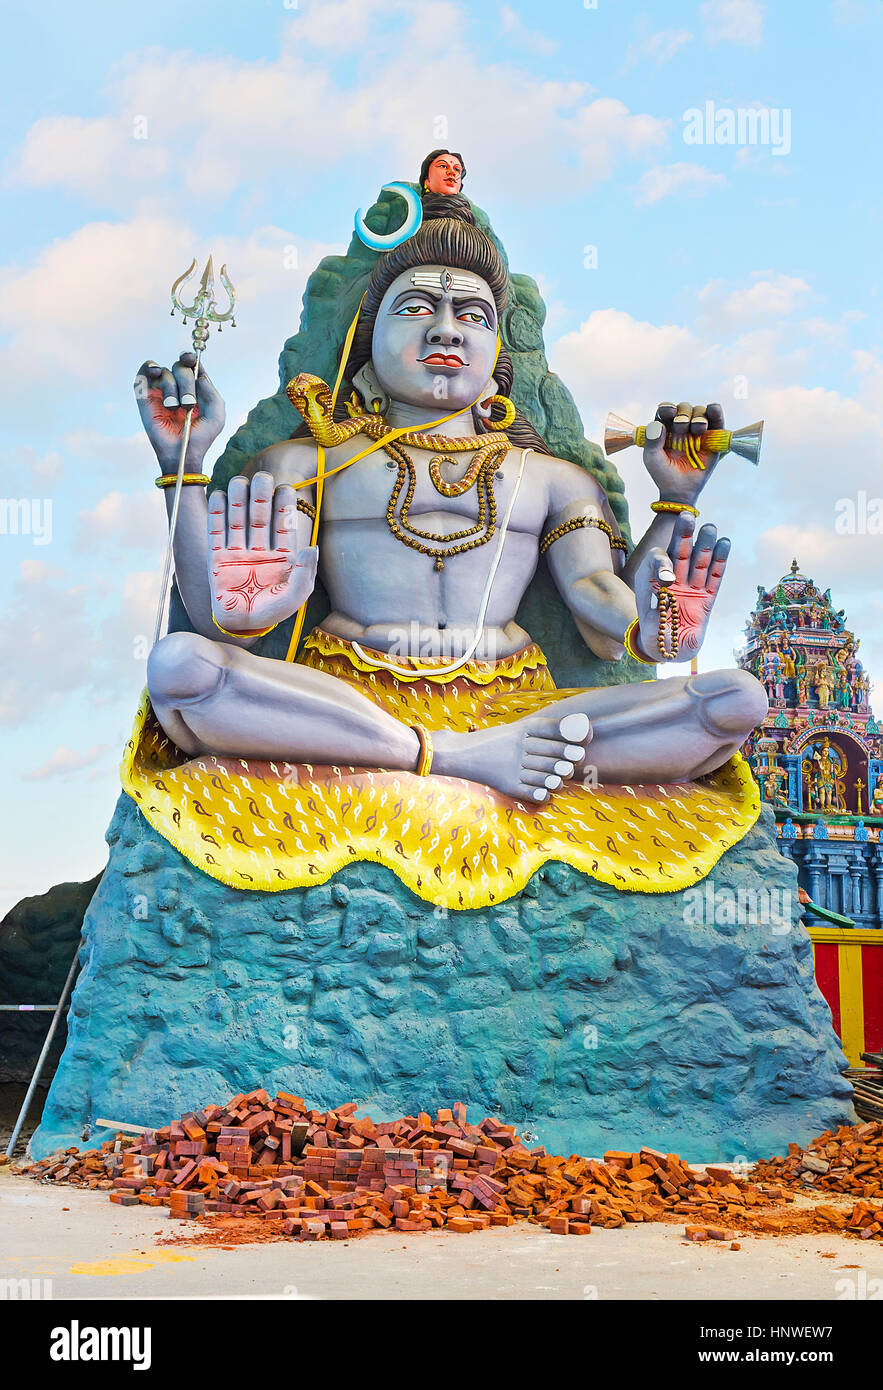 The statue of Lord Shiva with Chandra crescent moon and Ganga, flowing from his head, Murugan Kovil, Chilaw, Sri - Stock Image